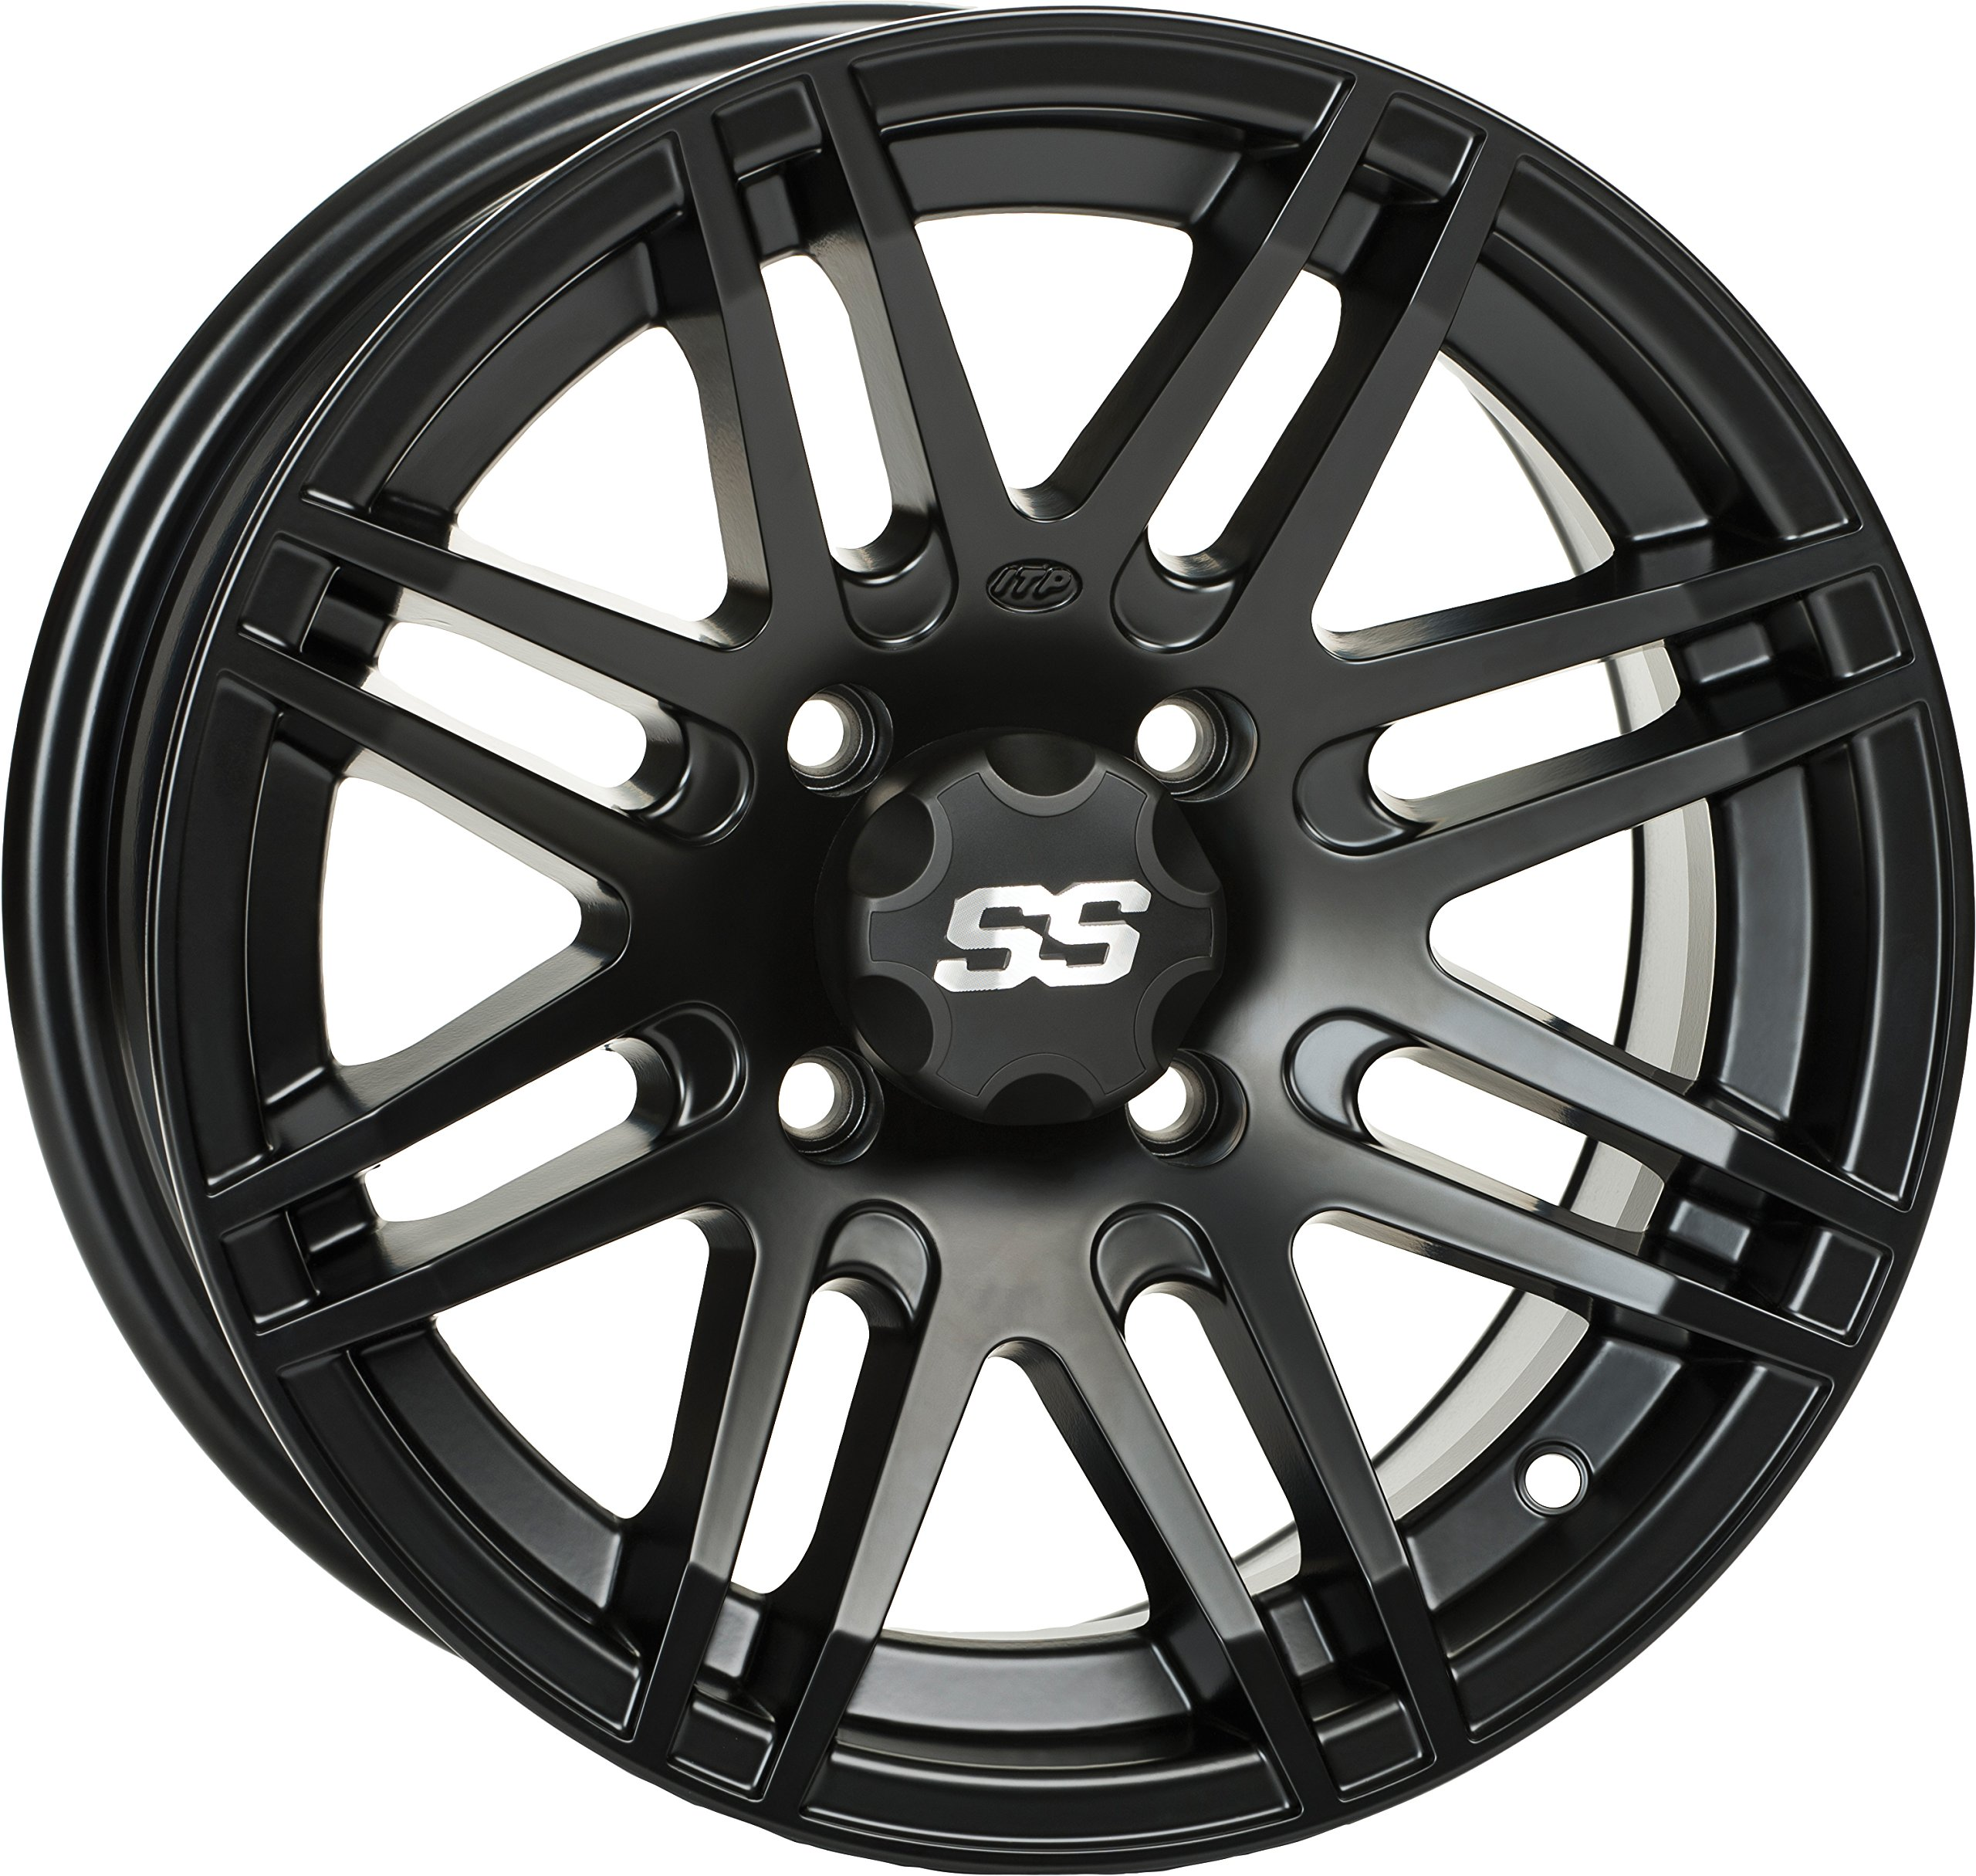 ITP SS ALLOY SS316 Matte Black Wheel with Machined Finish (12x7''/4x137mm)